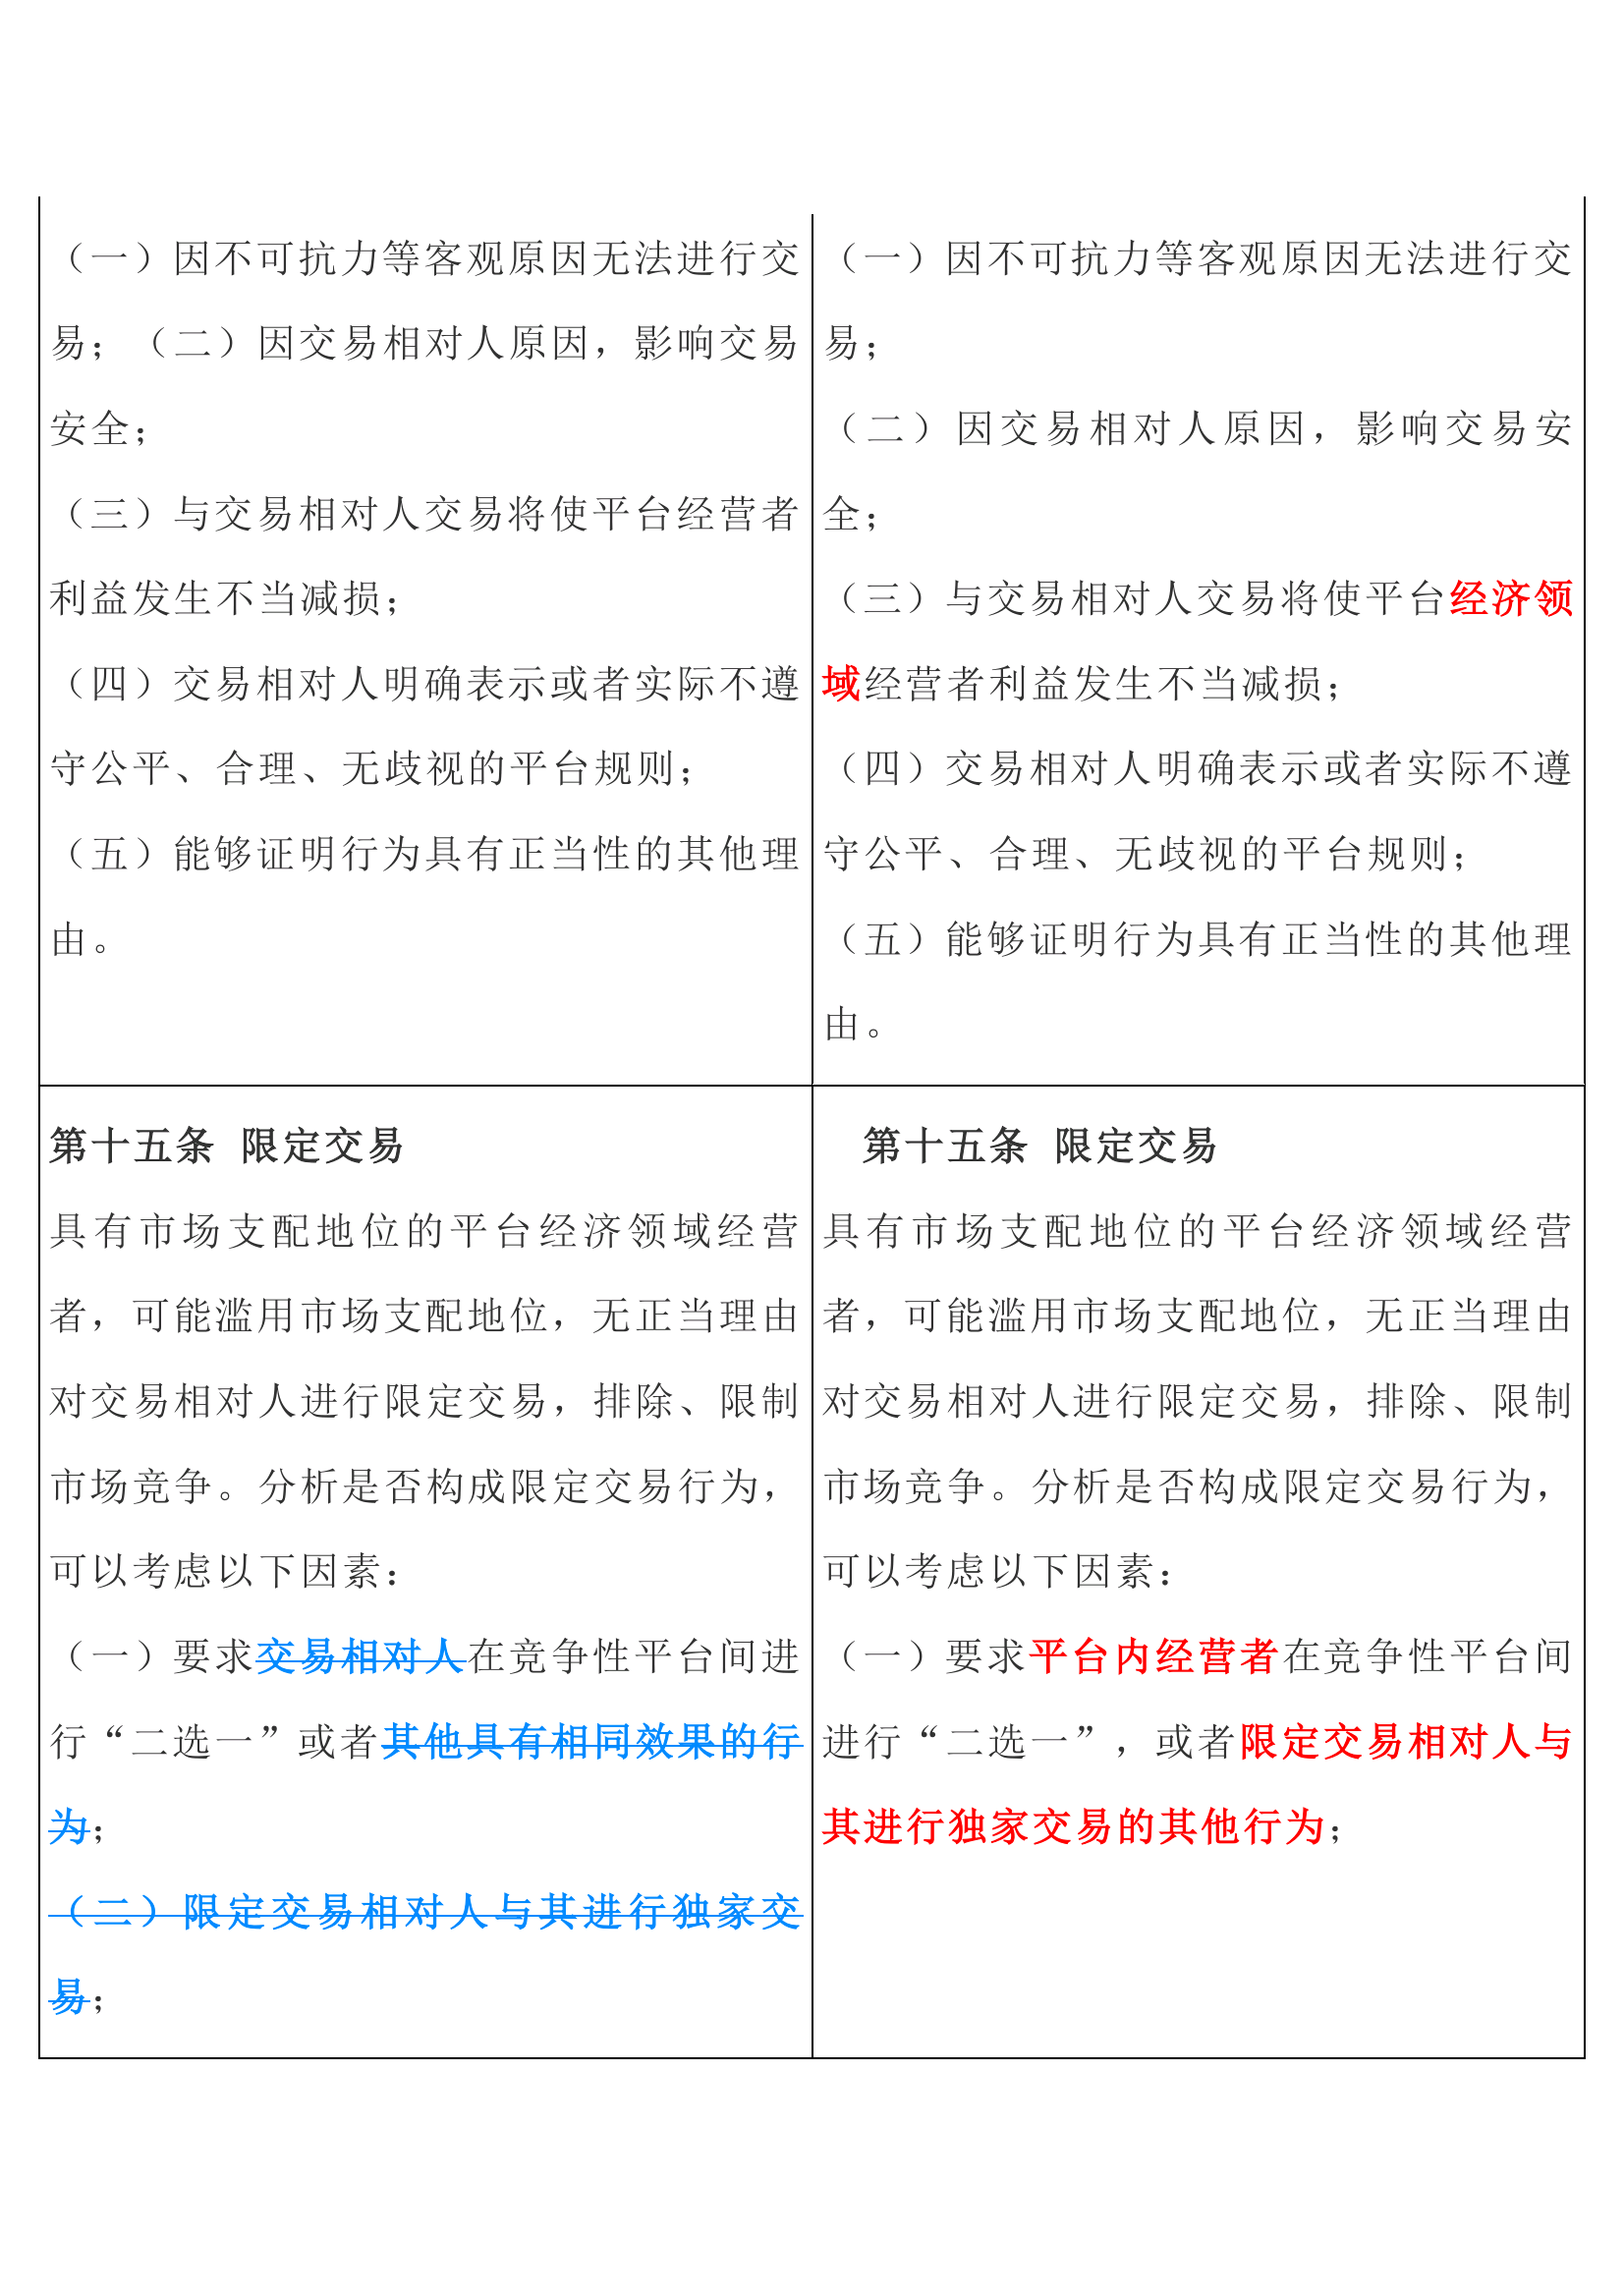 share_pdf_exportpage19(2).png